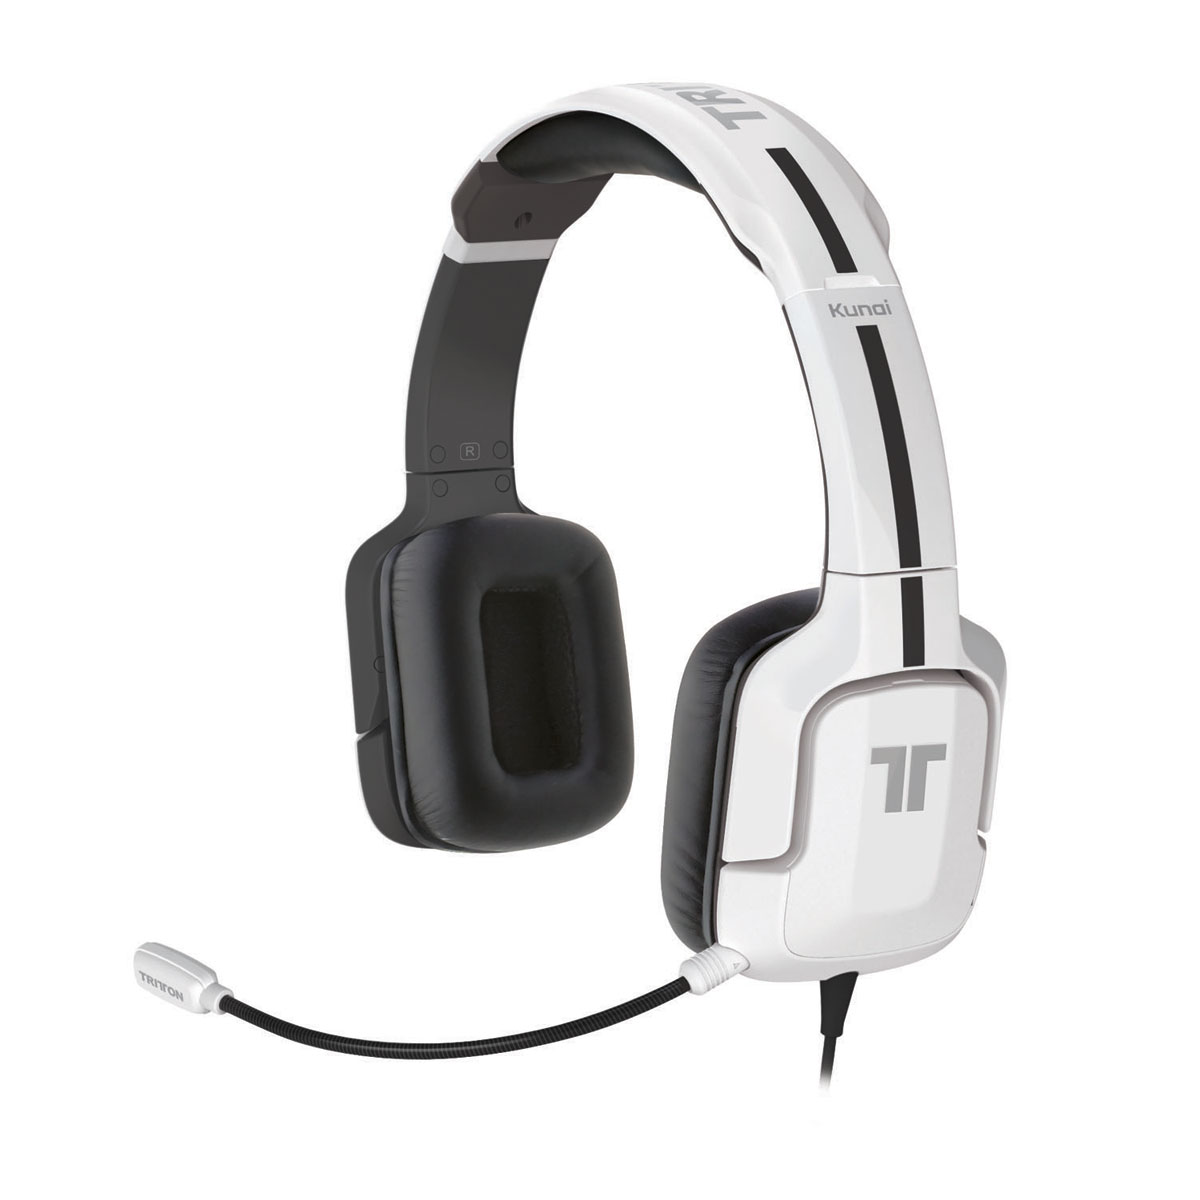 tritton kunai for playstation blanc tri881040001 02 1 achat vente accessoires ps3 sur. Black Bedroom Furniture Sets. Home Design Ideas